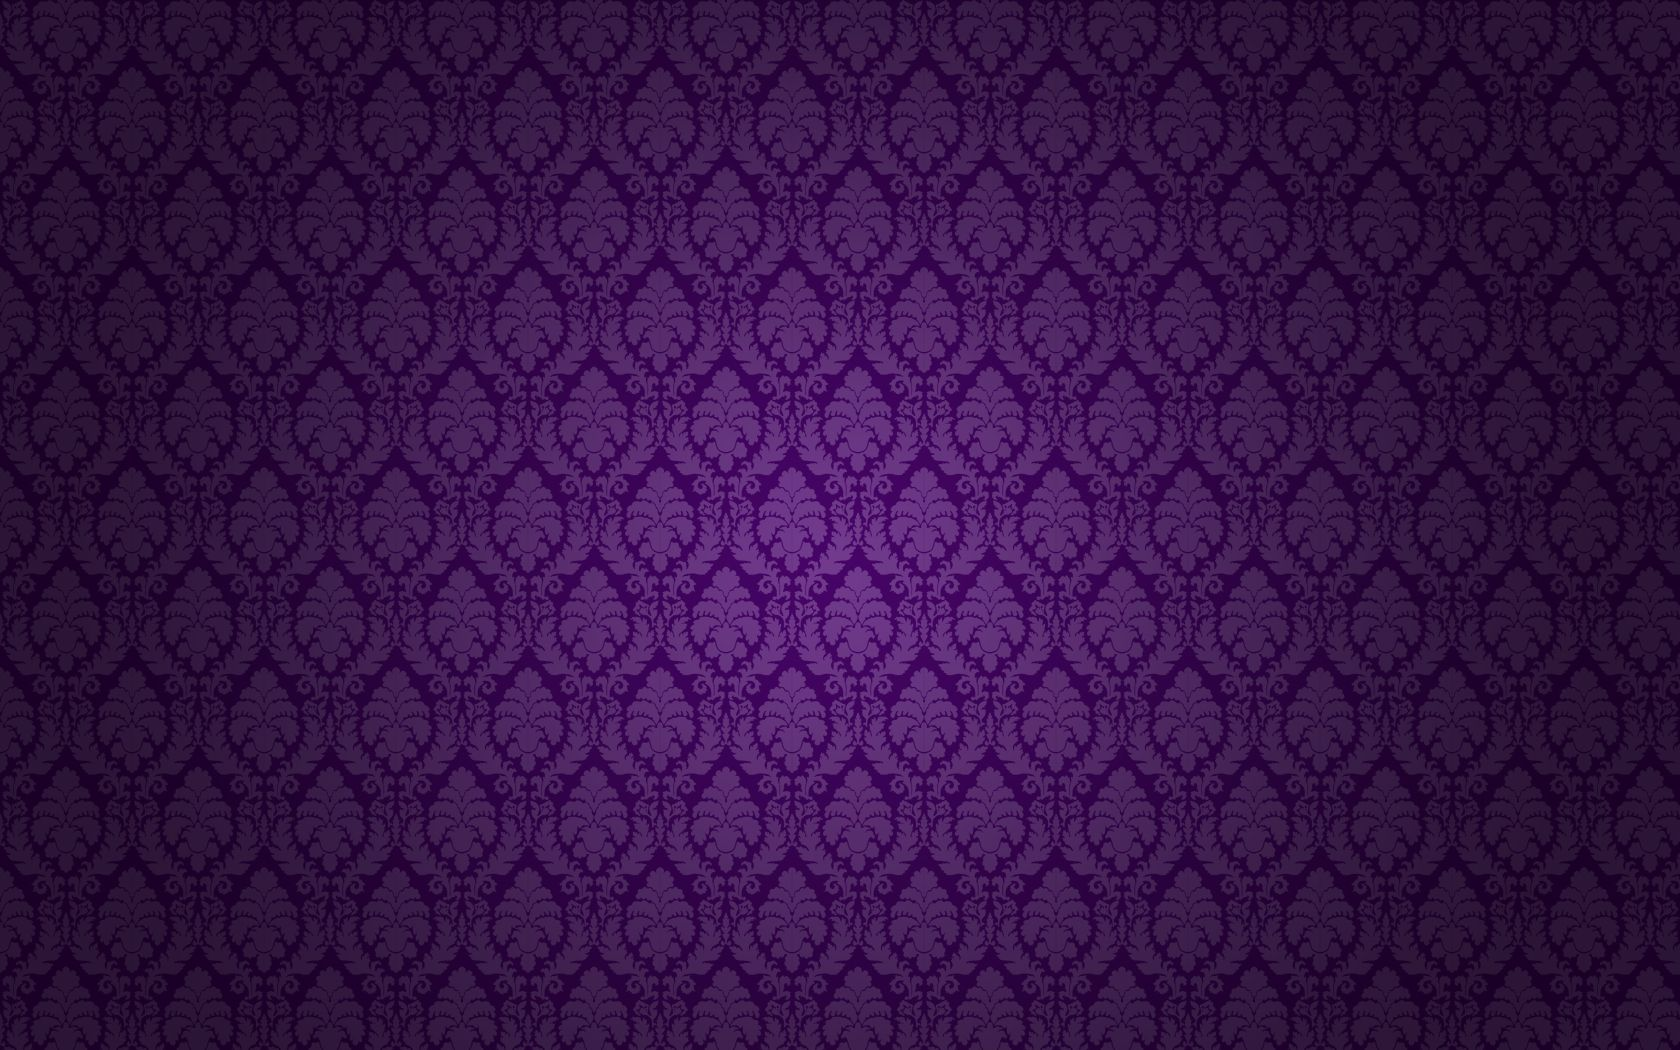 purple images for wallpaper purple damask peach flock by